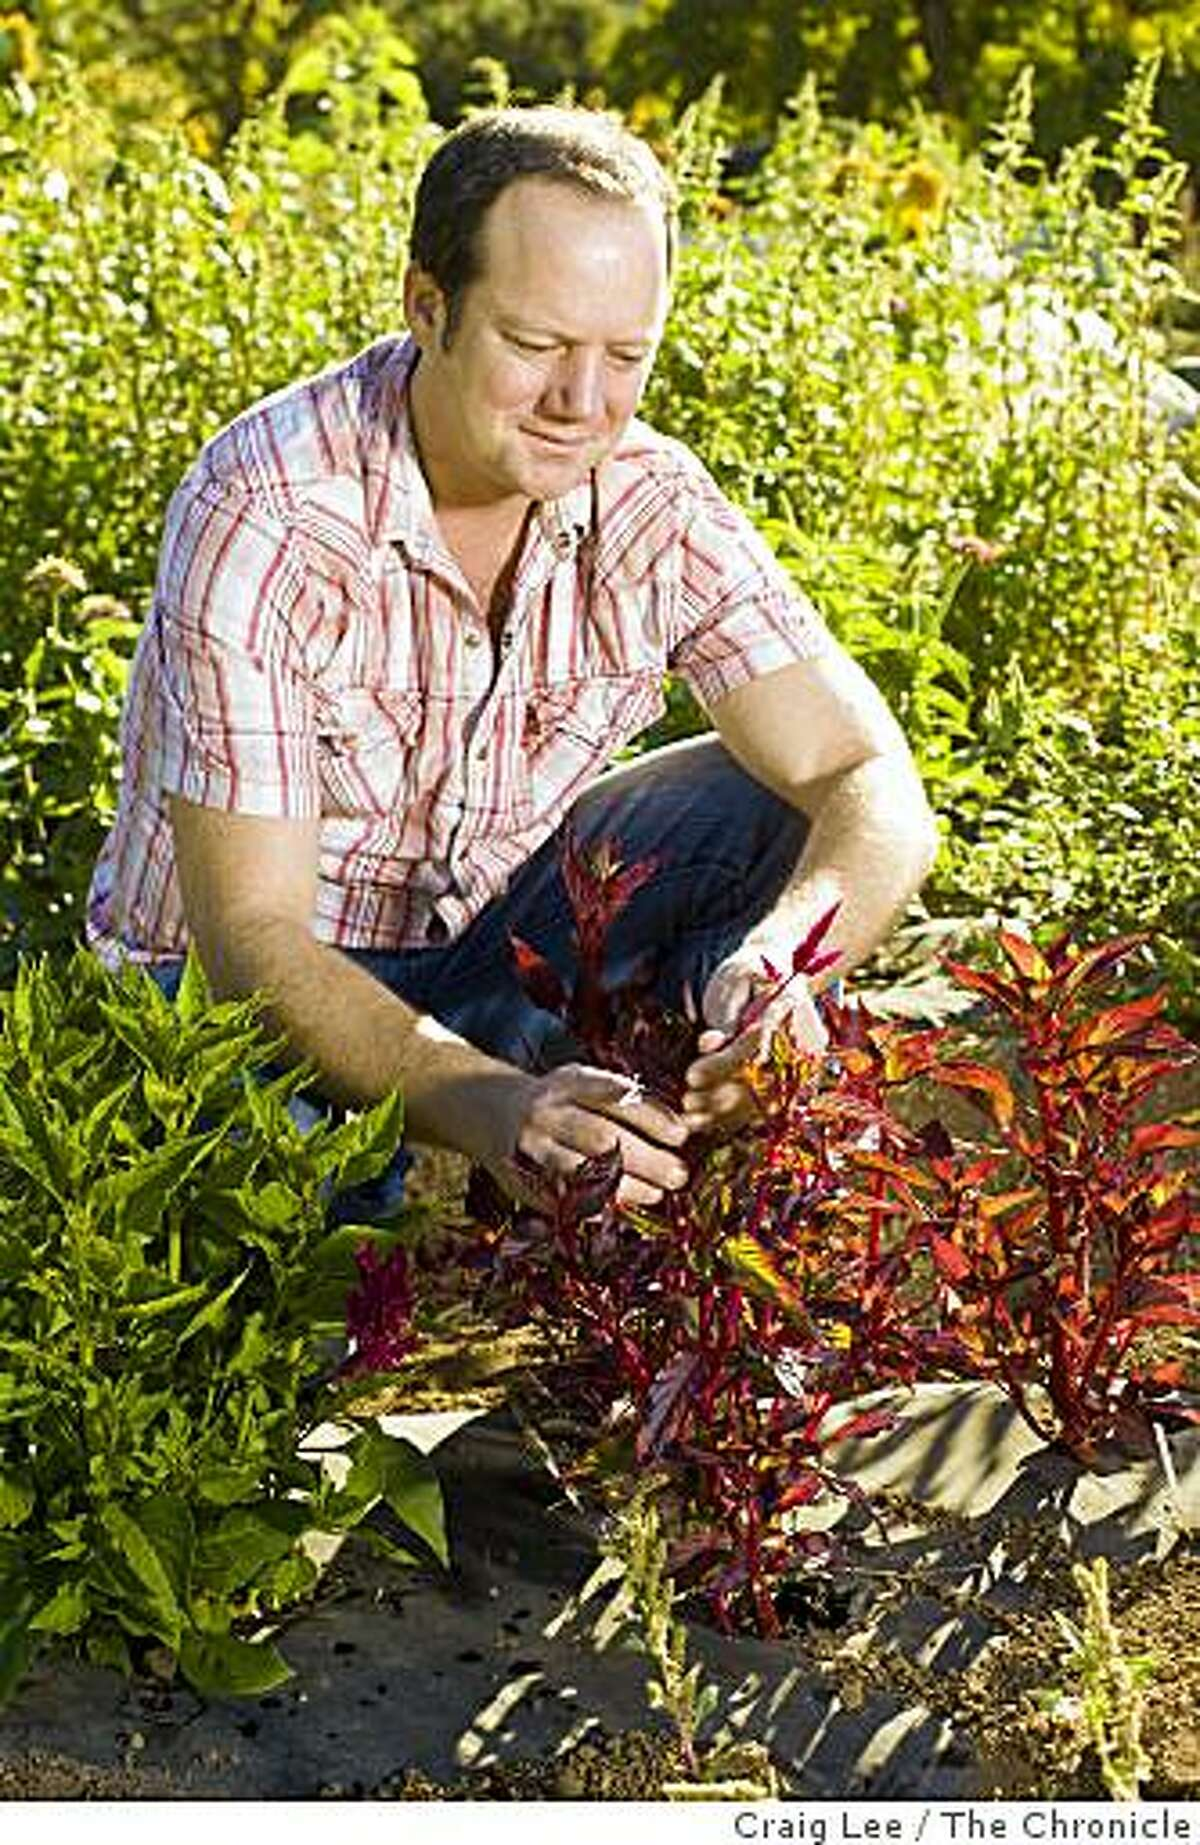 Scott Beattie next to an amaranth plant, one of the many flavor ingredients for his cocktail drinks, in Healdsburg, Calif., on September 26, 2008.